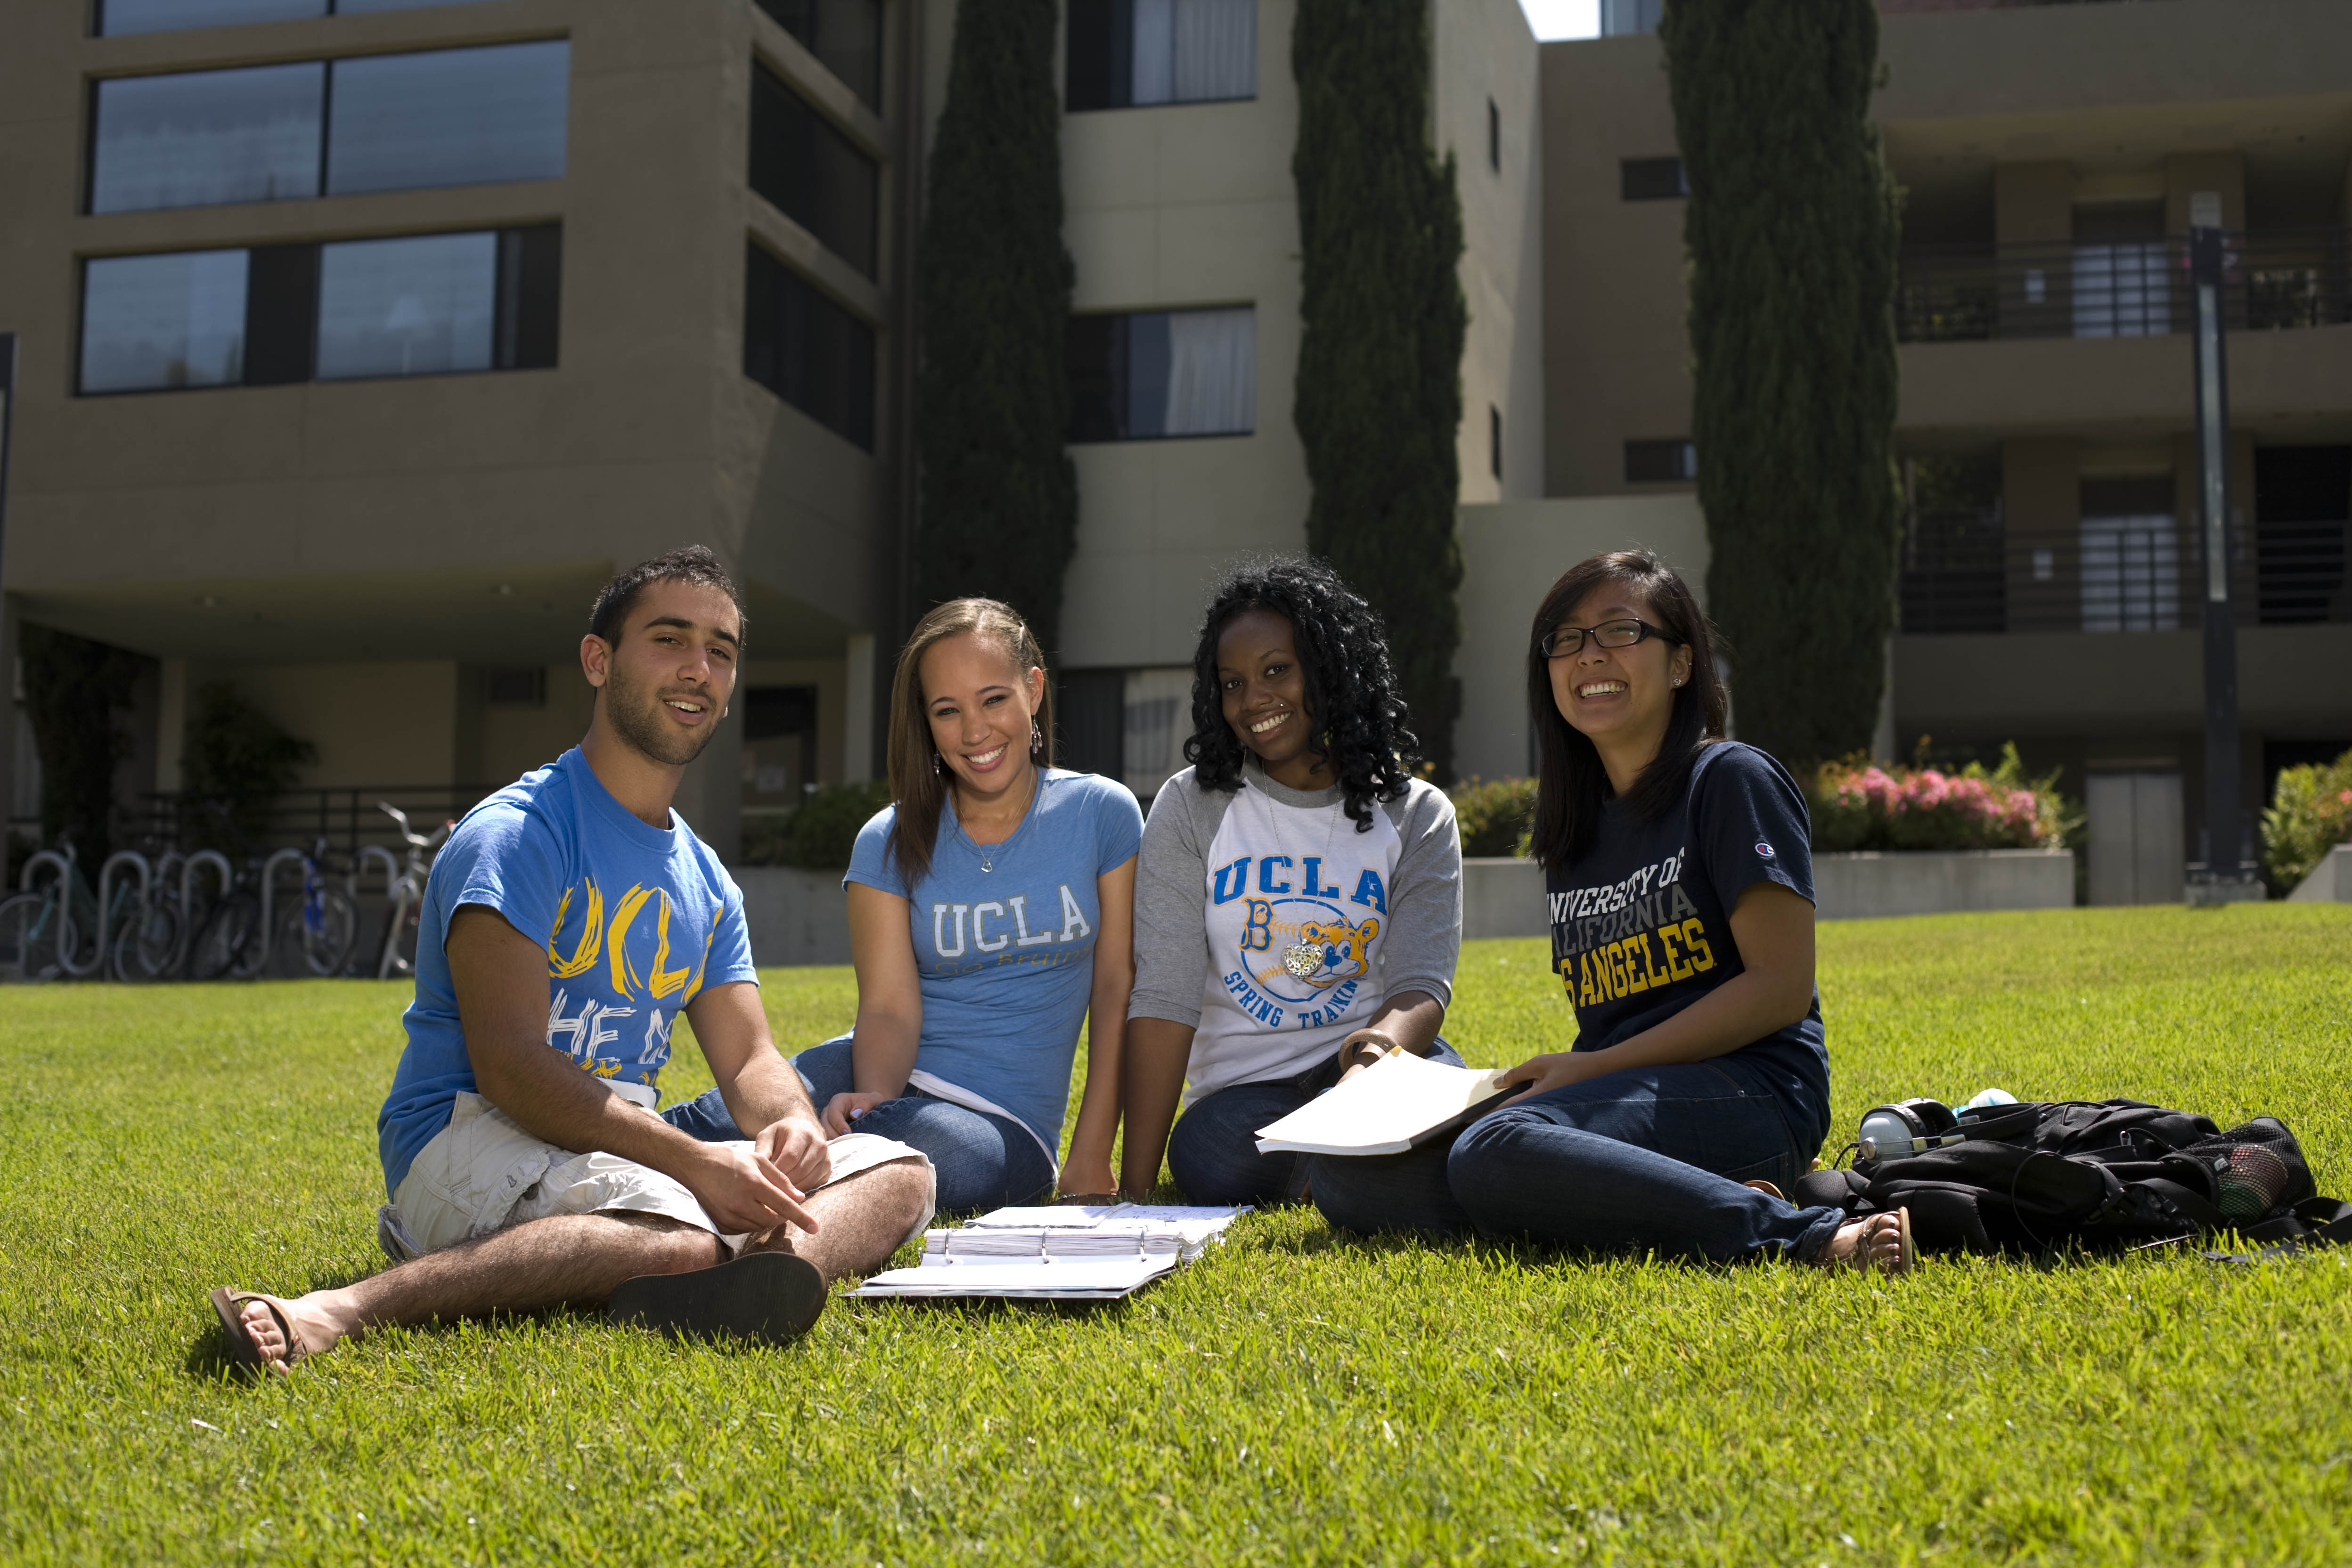 uclastudents_onthelawn